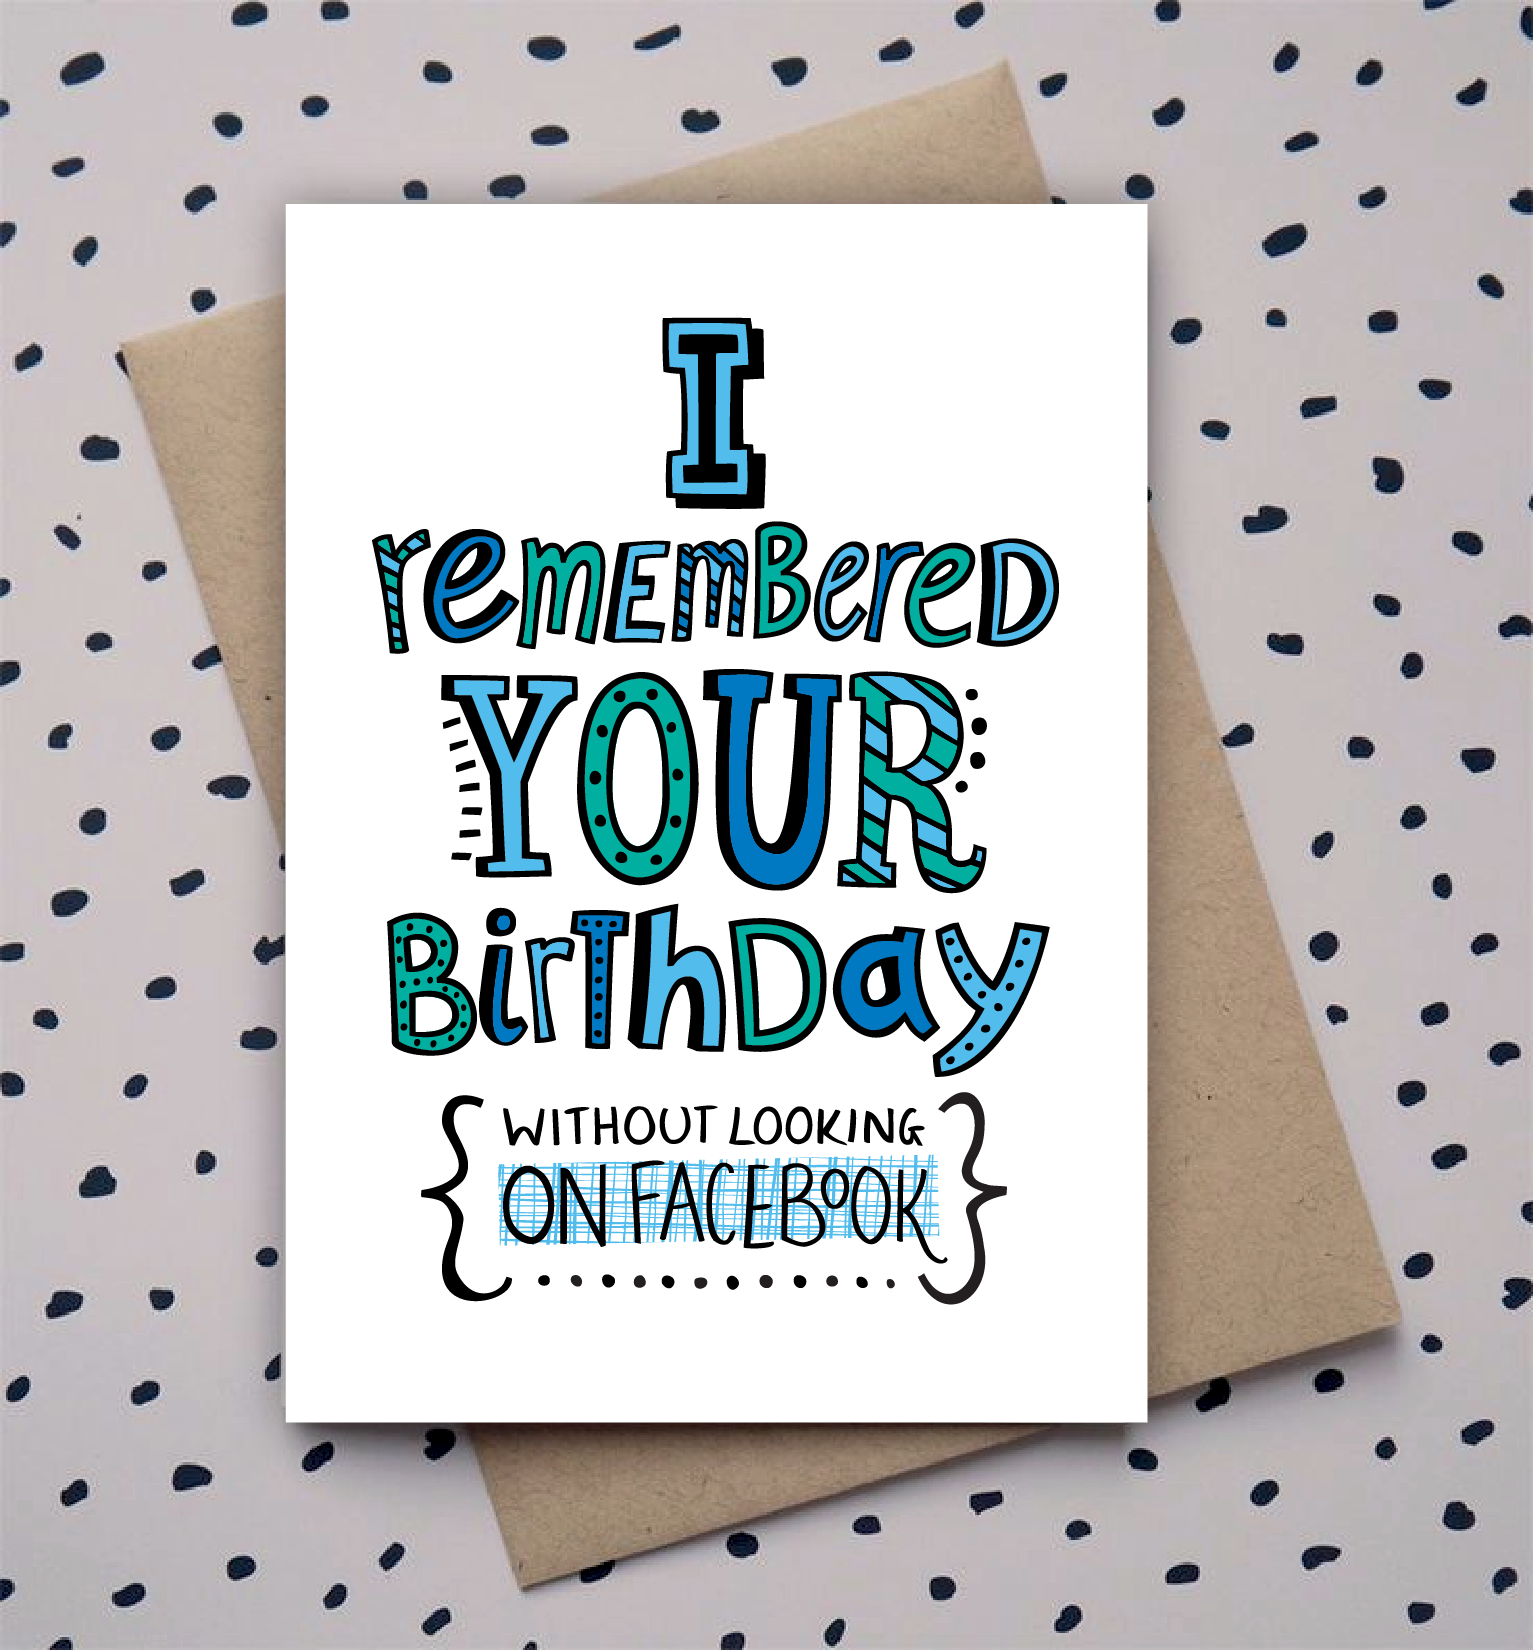 20th birthday card ideas beautiful holiday season wishes birthday cards drawing at getdrawingscom free for personal use birthday cards drawing 57 birthday cards drawing 20th birthday card ideas beautiful bookmarktalkfo Images